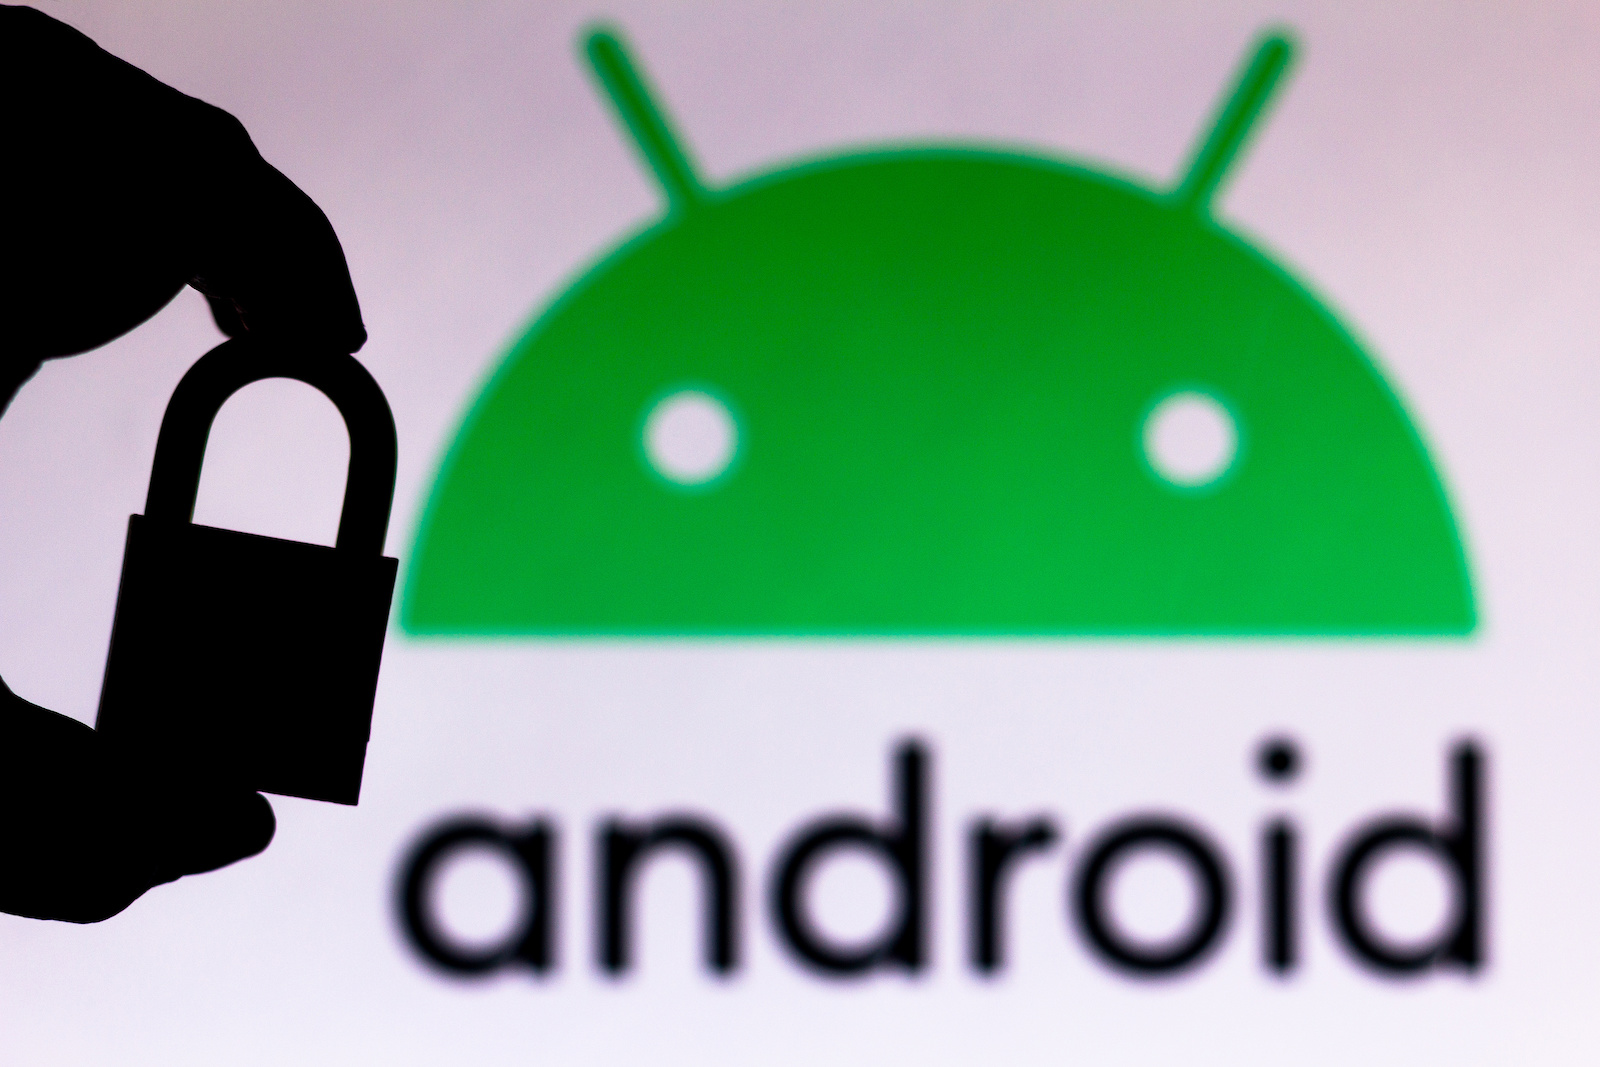 BRAZIL - 2020/07/11: In this photo illustration a padlock appears next to the Android logo. Online data protection/breach concept. Internet privacy issues. (Photo Illustration by Rafael Henrique/SOPA Images/LightRocket via Getty Images)